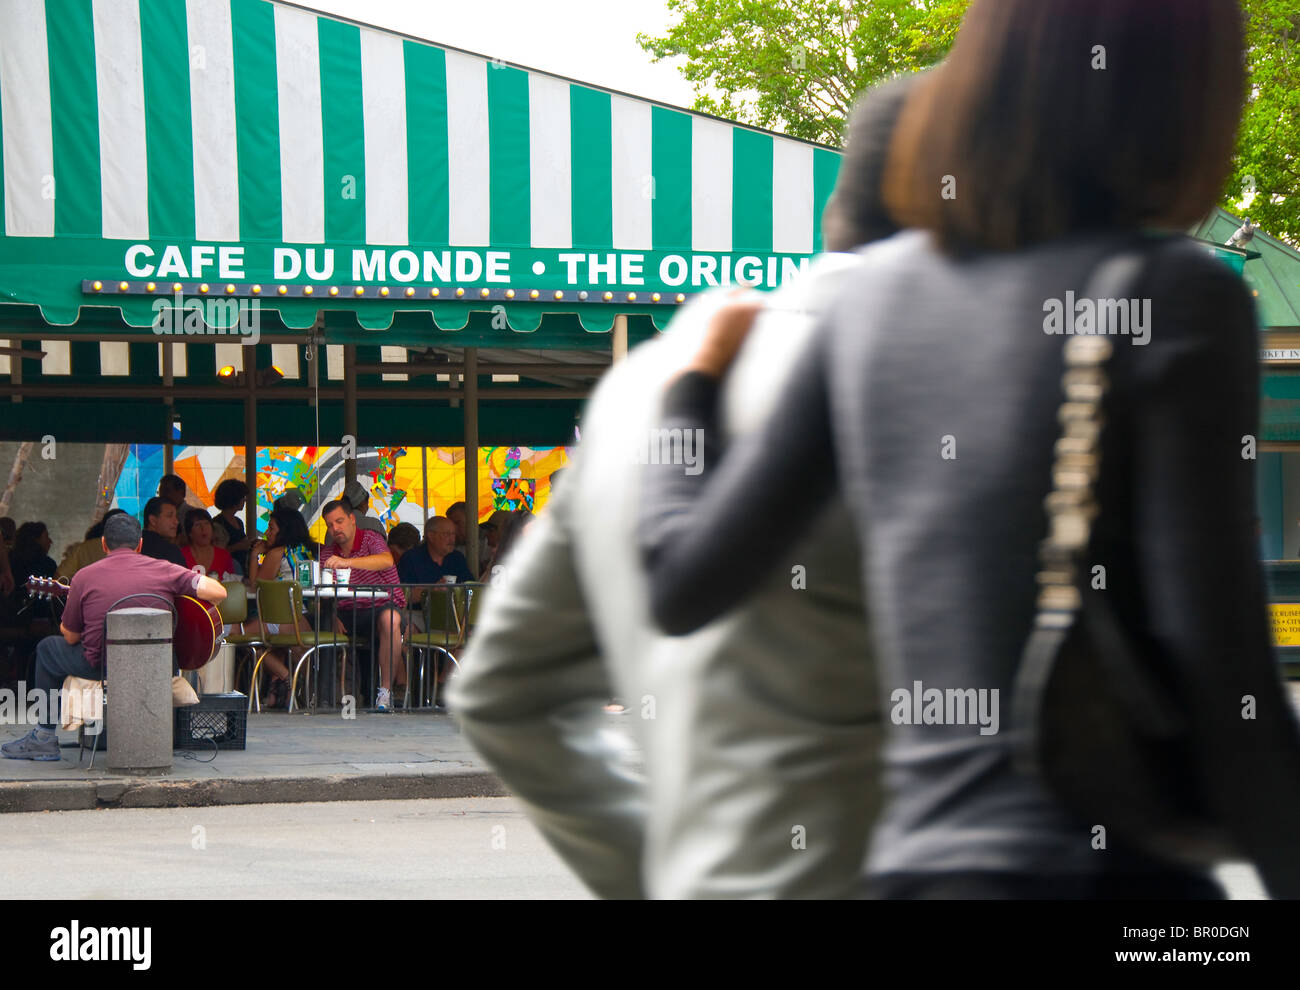 Cafe Du Monde Coffee Shop, in the French Quarter of New Orleans, Louisiana, USA - Stock Image